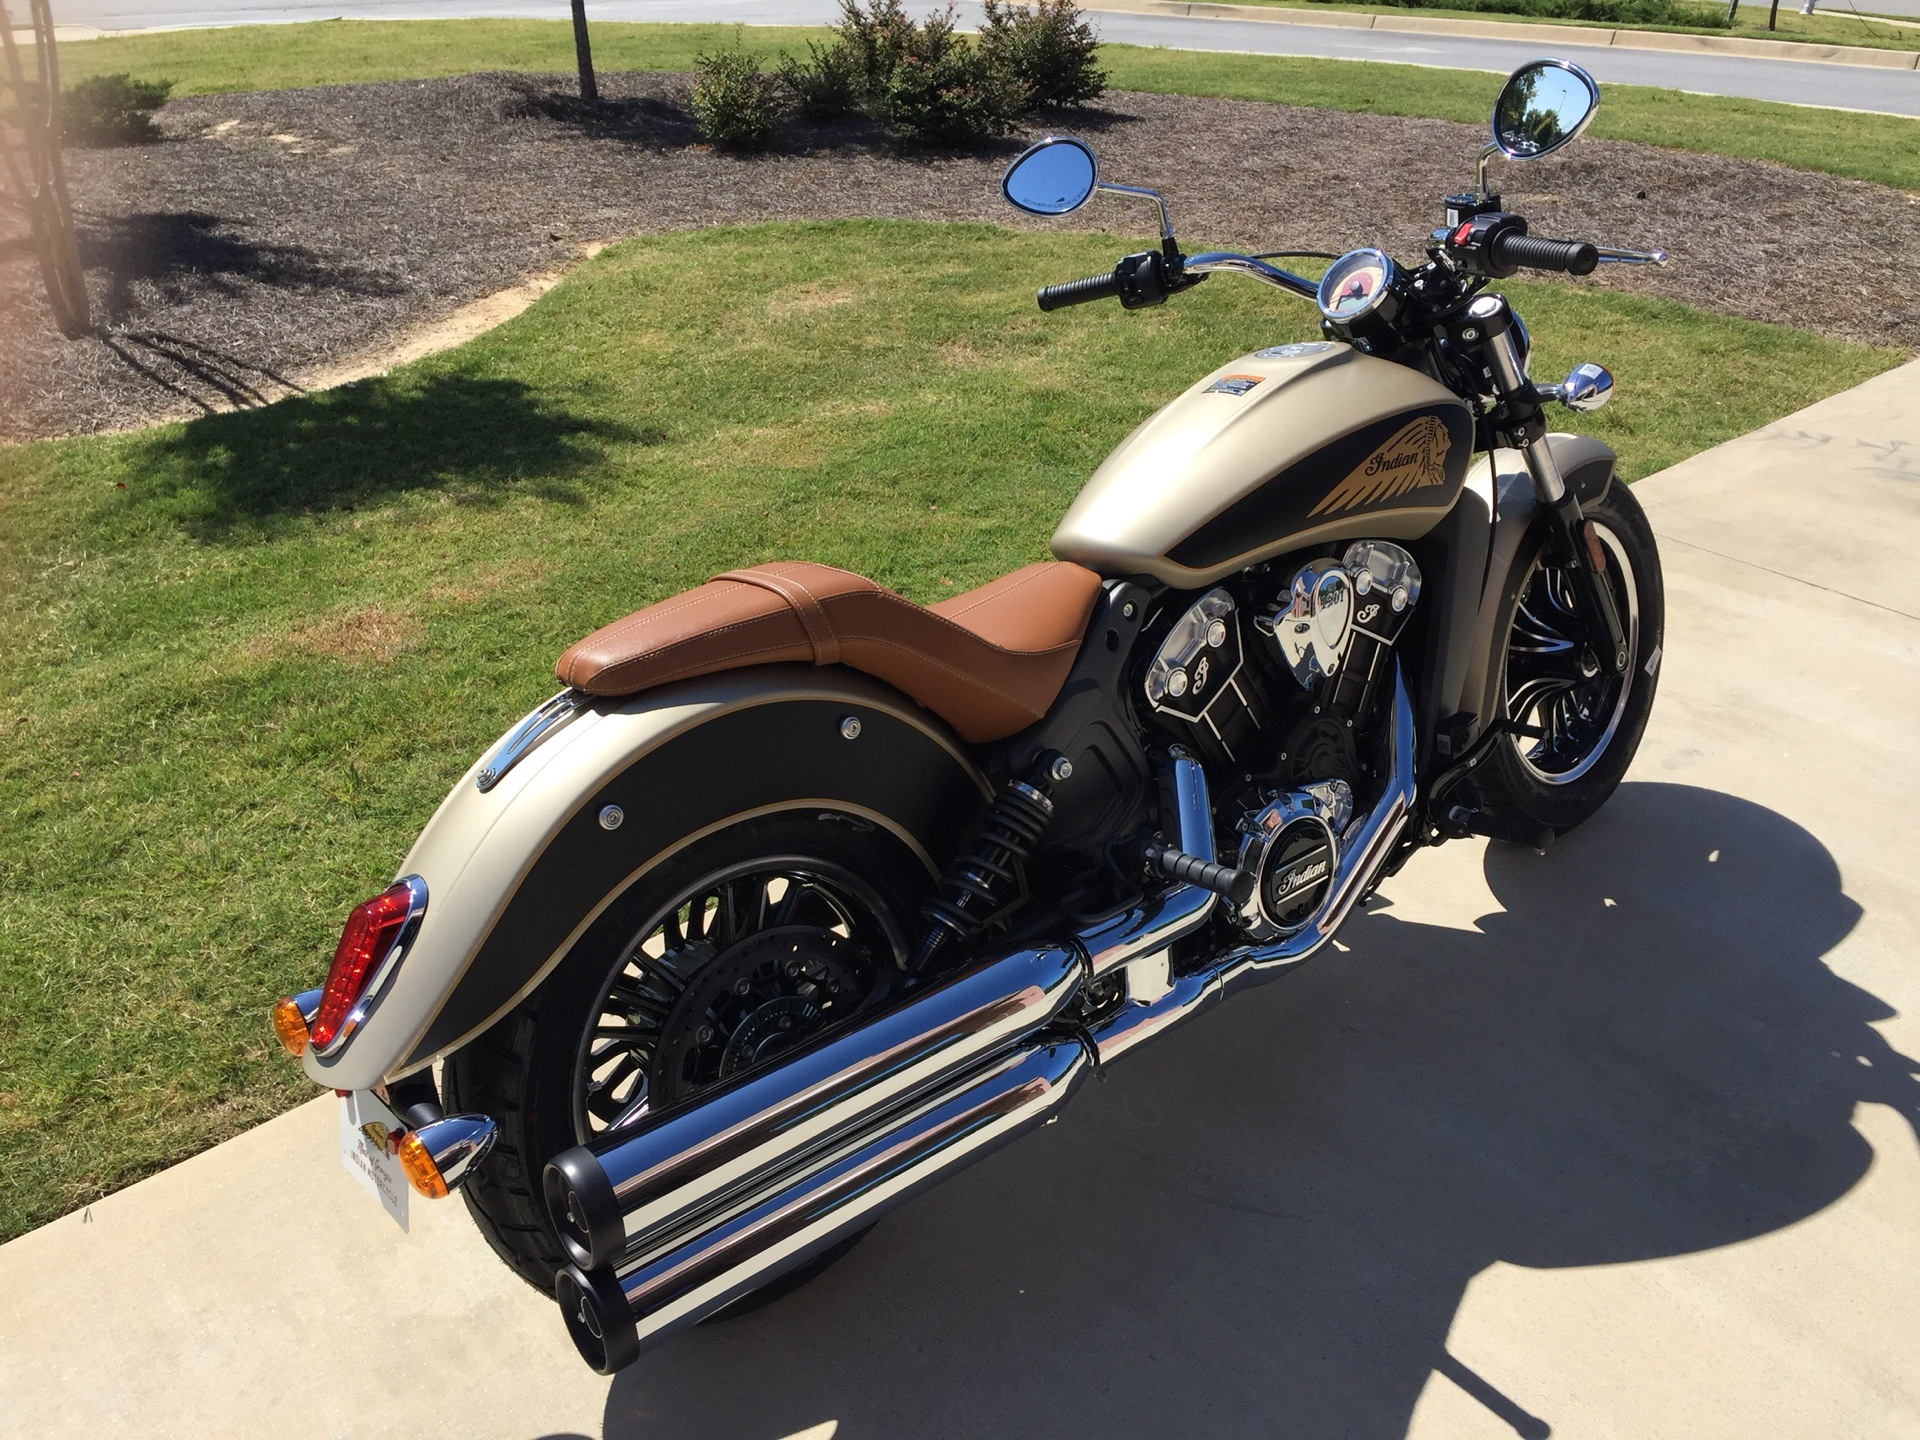 2020 Indian Scout® ABS Icon Series in Buford, Georgia - Photo 3